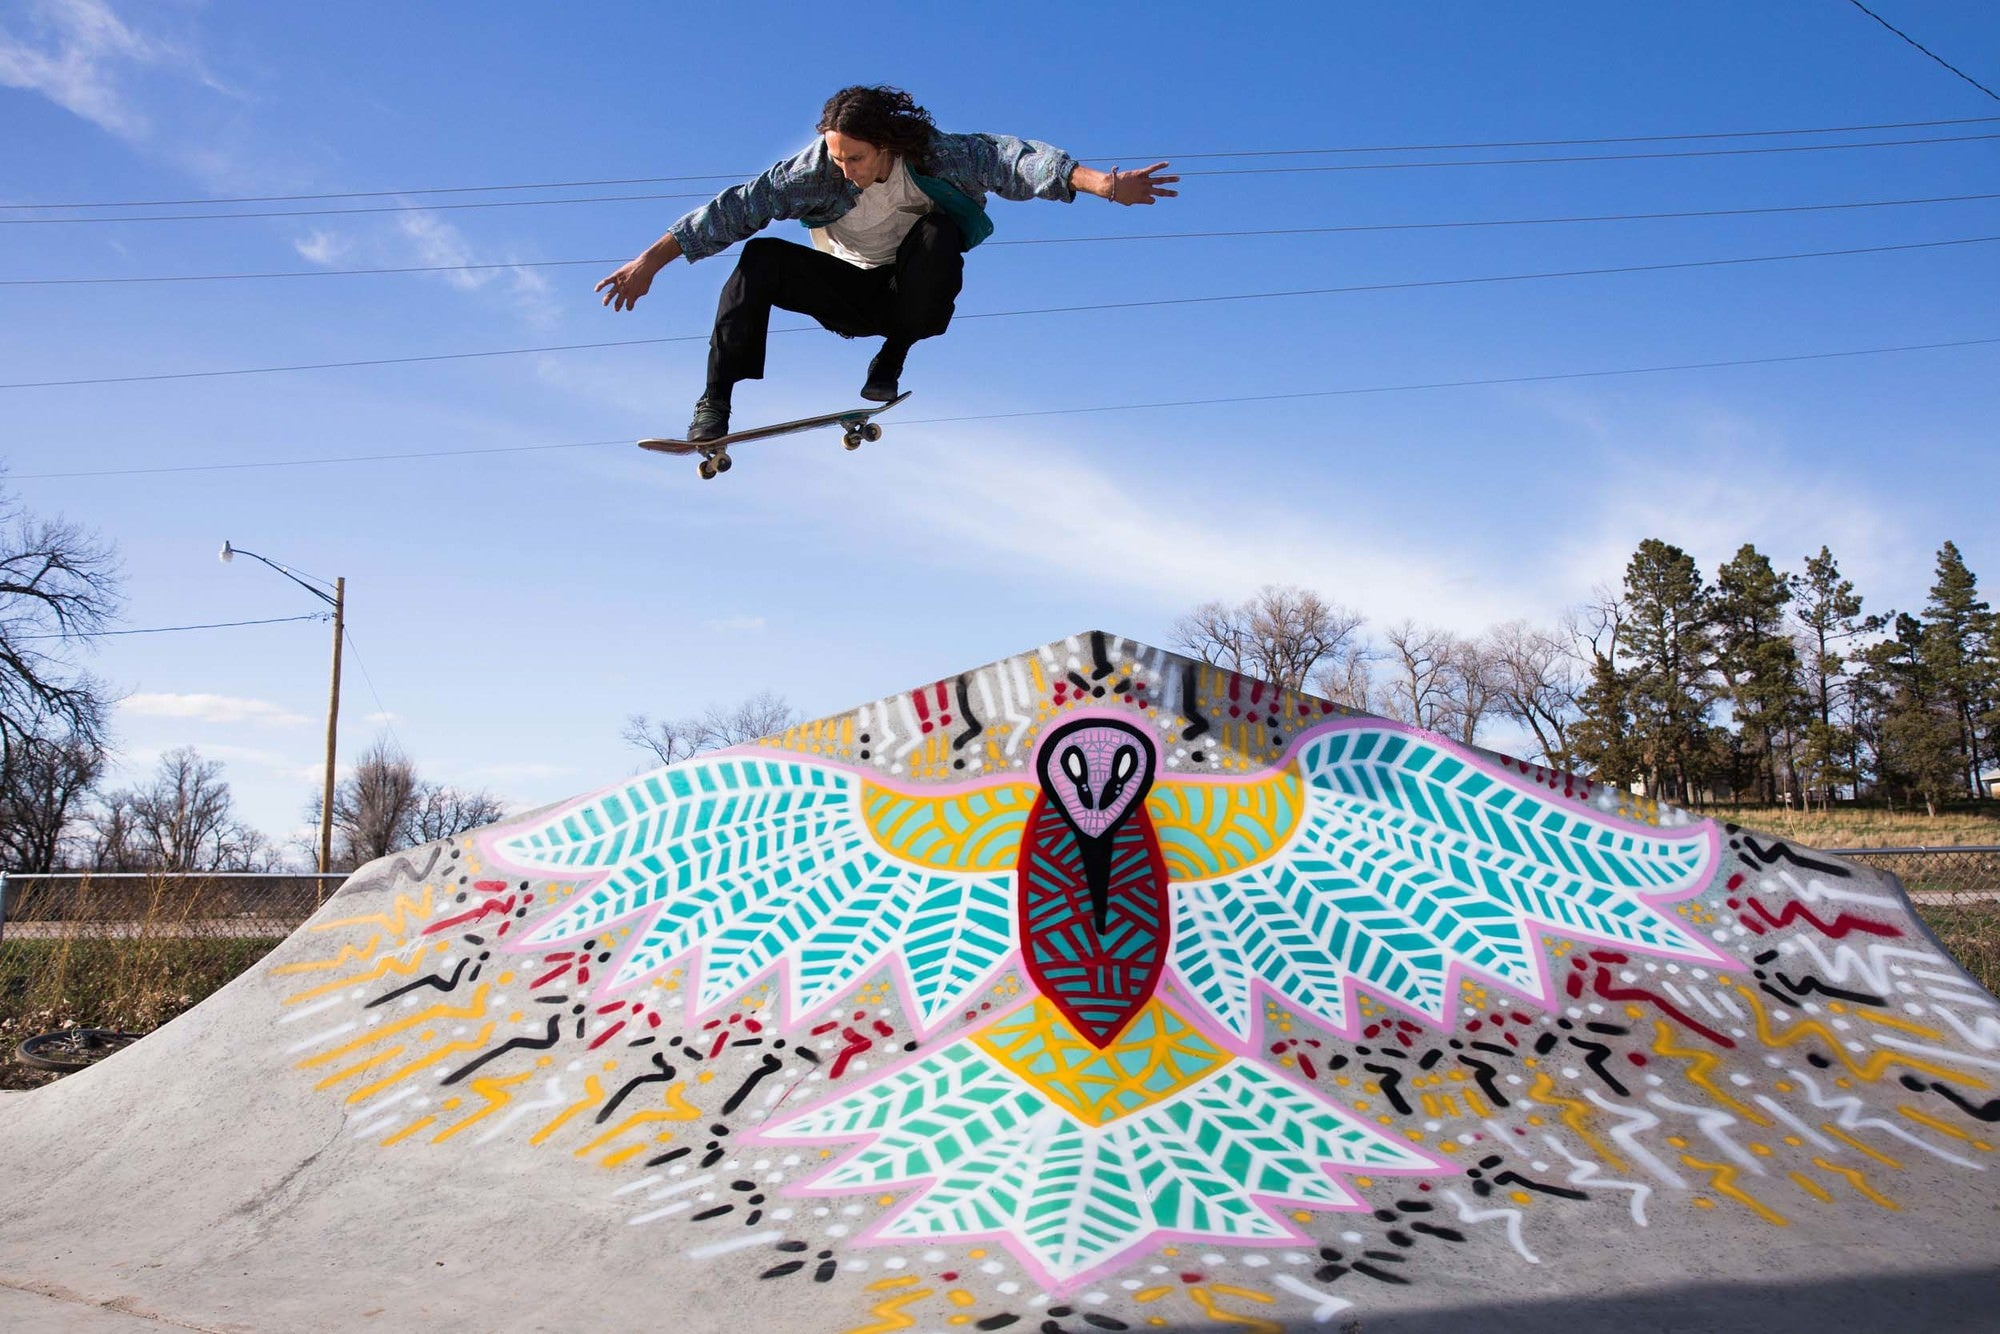 element-6-most-influential-brands-in-skateboarding-photo-2